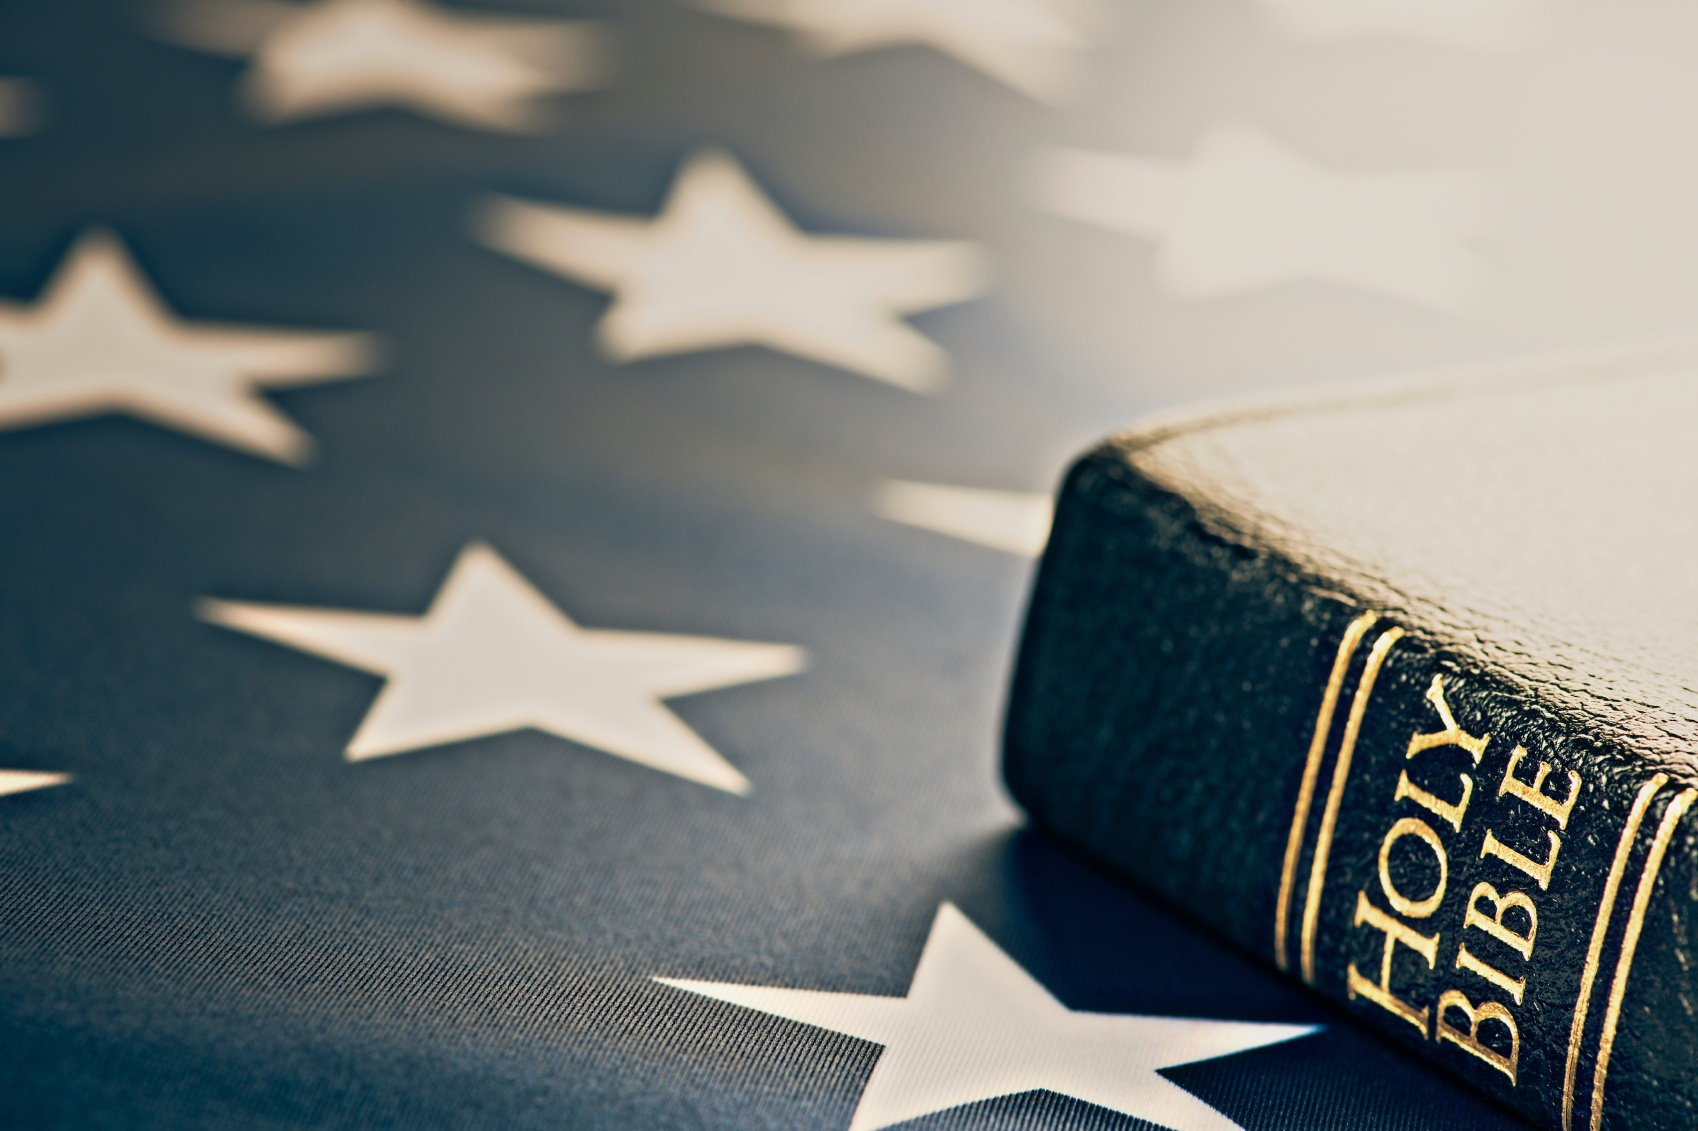 Dr. Mark Kalthoff comments on the growing numbers of religiously unaffiliated Americans